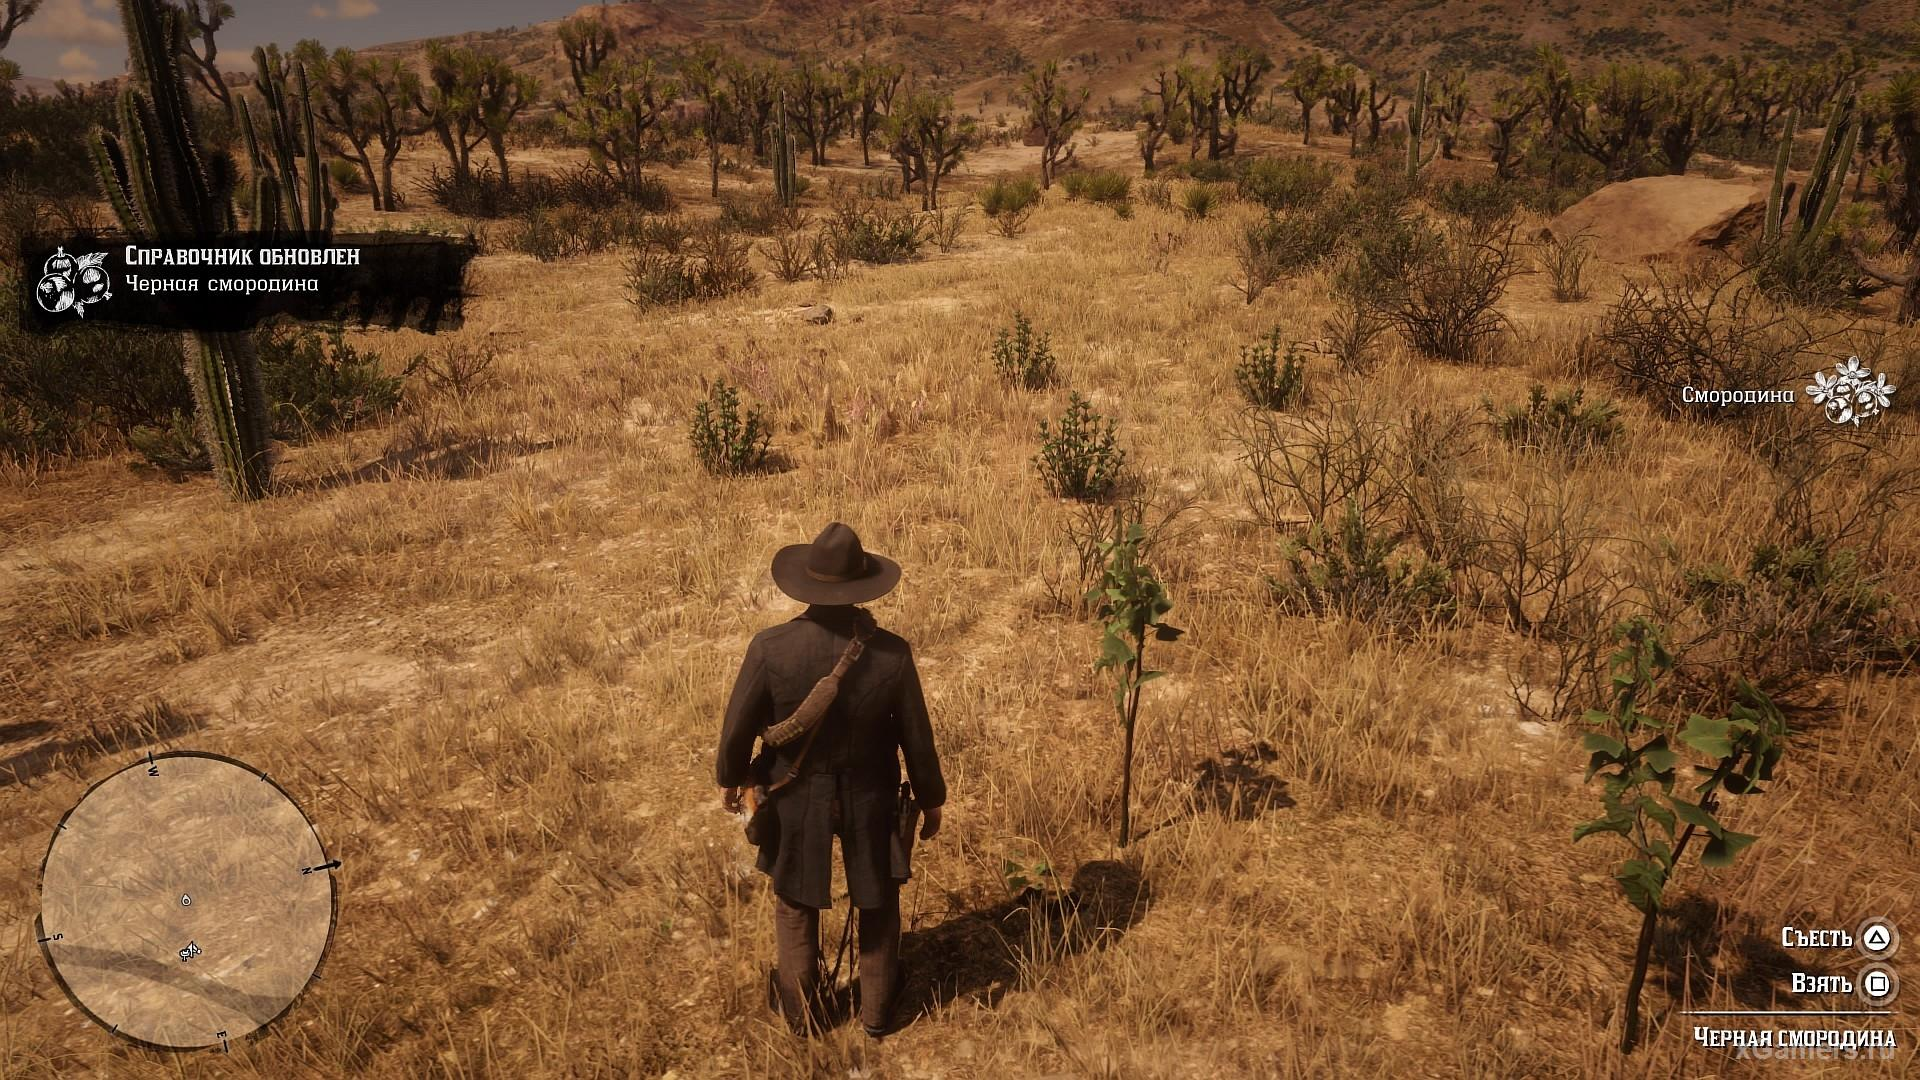 Search for black currant in the game RDR 2